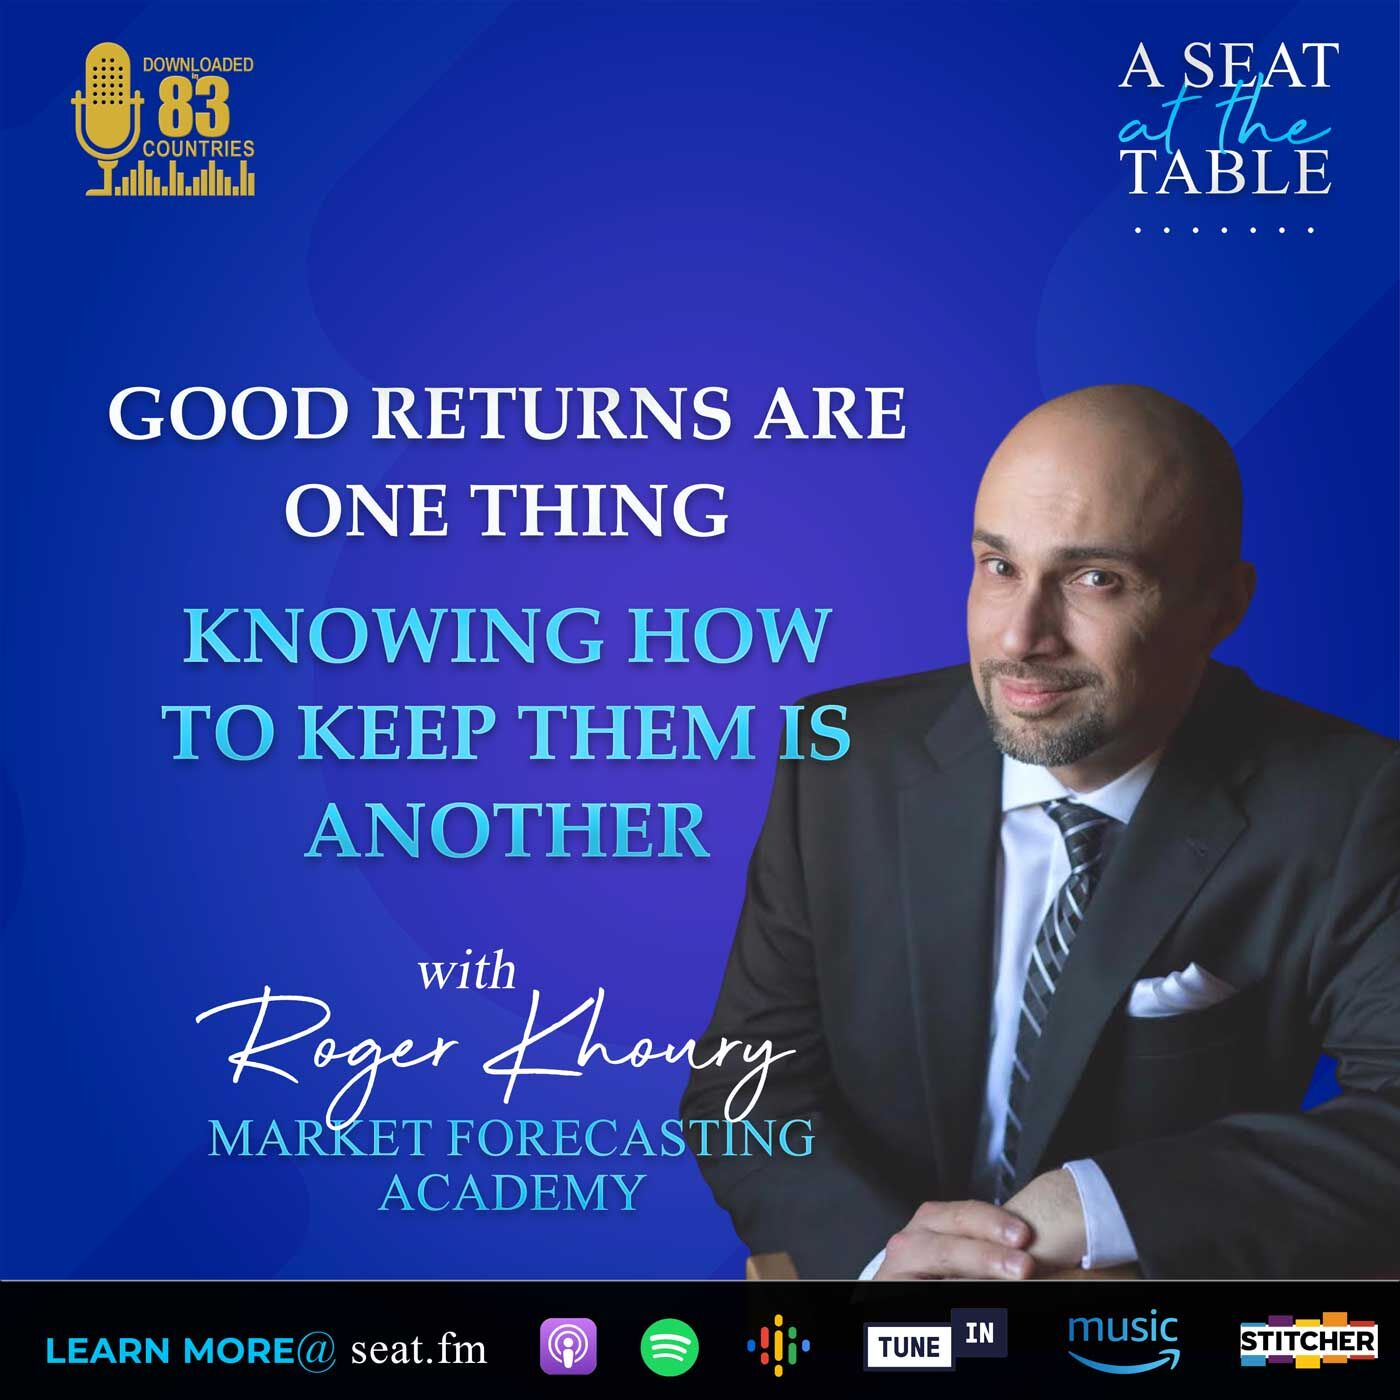 Getting Good Returns is One Thing. Knowing How to Keep Them is Another.